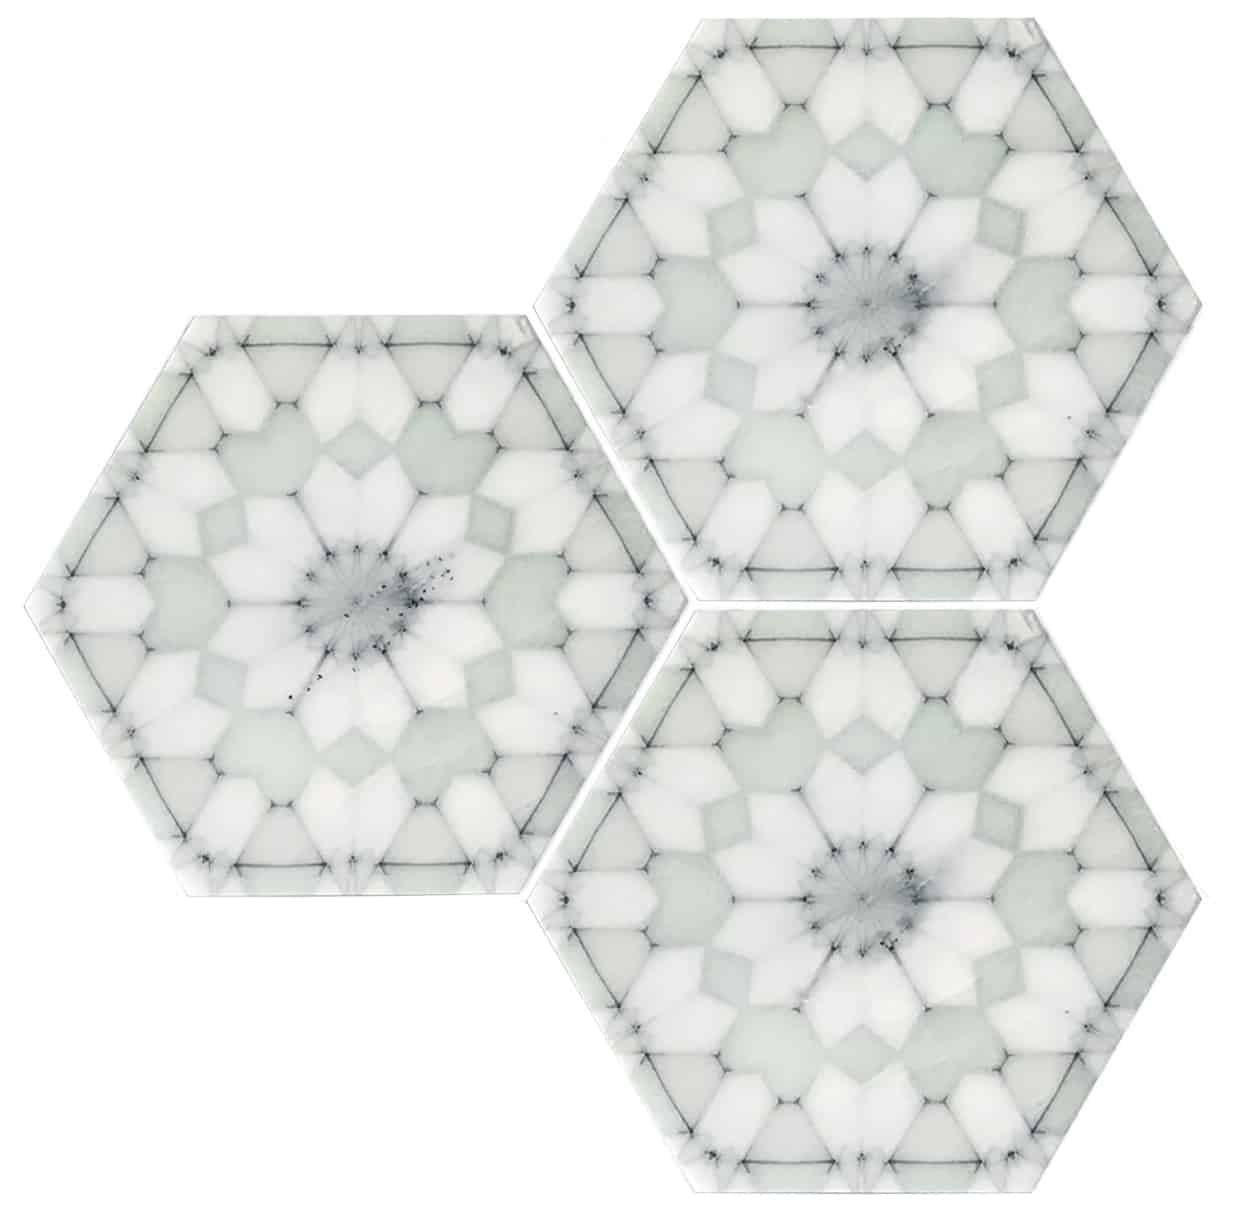 Alston Aliso Mint Green Pattern Tile